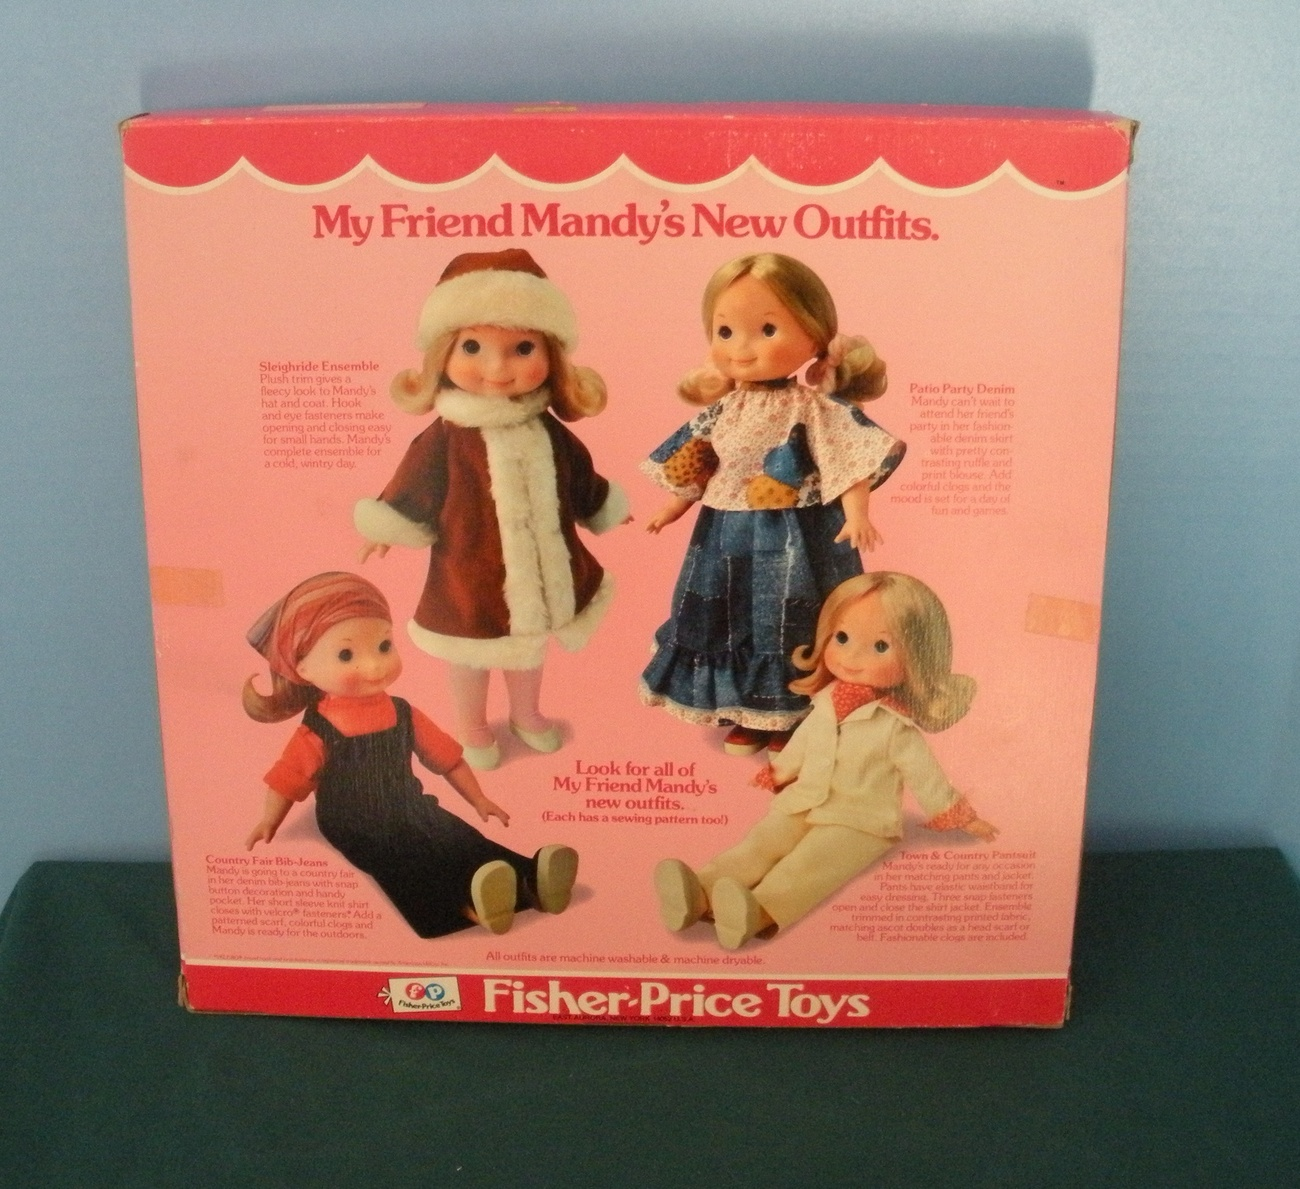 Vintage Fisher Price My Friend Doll #220 Springtime Tennis Outfit New in Box!